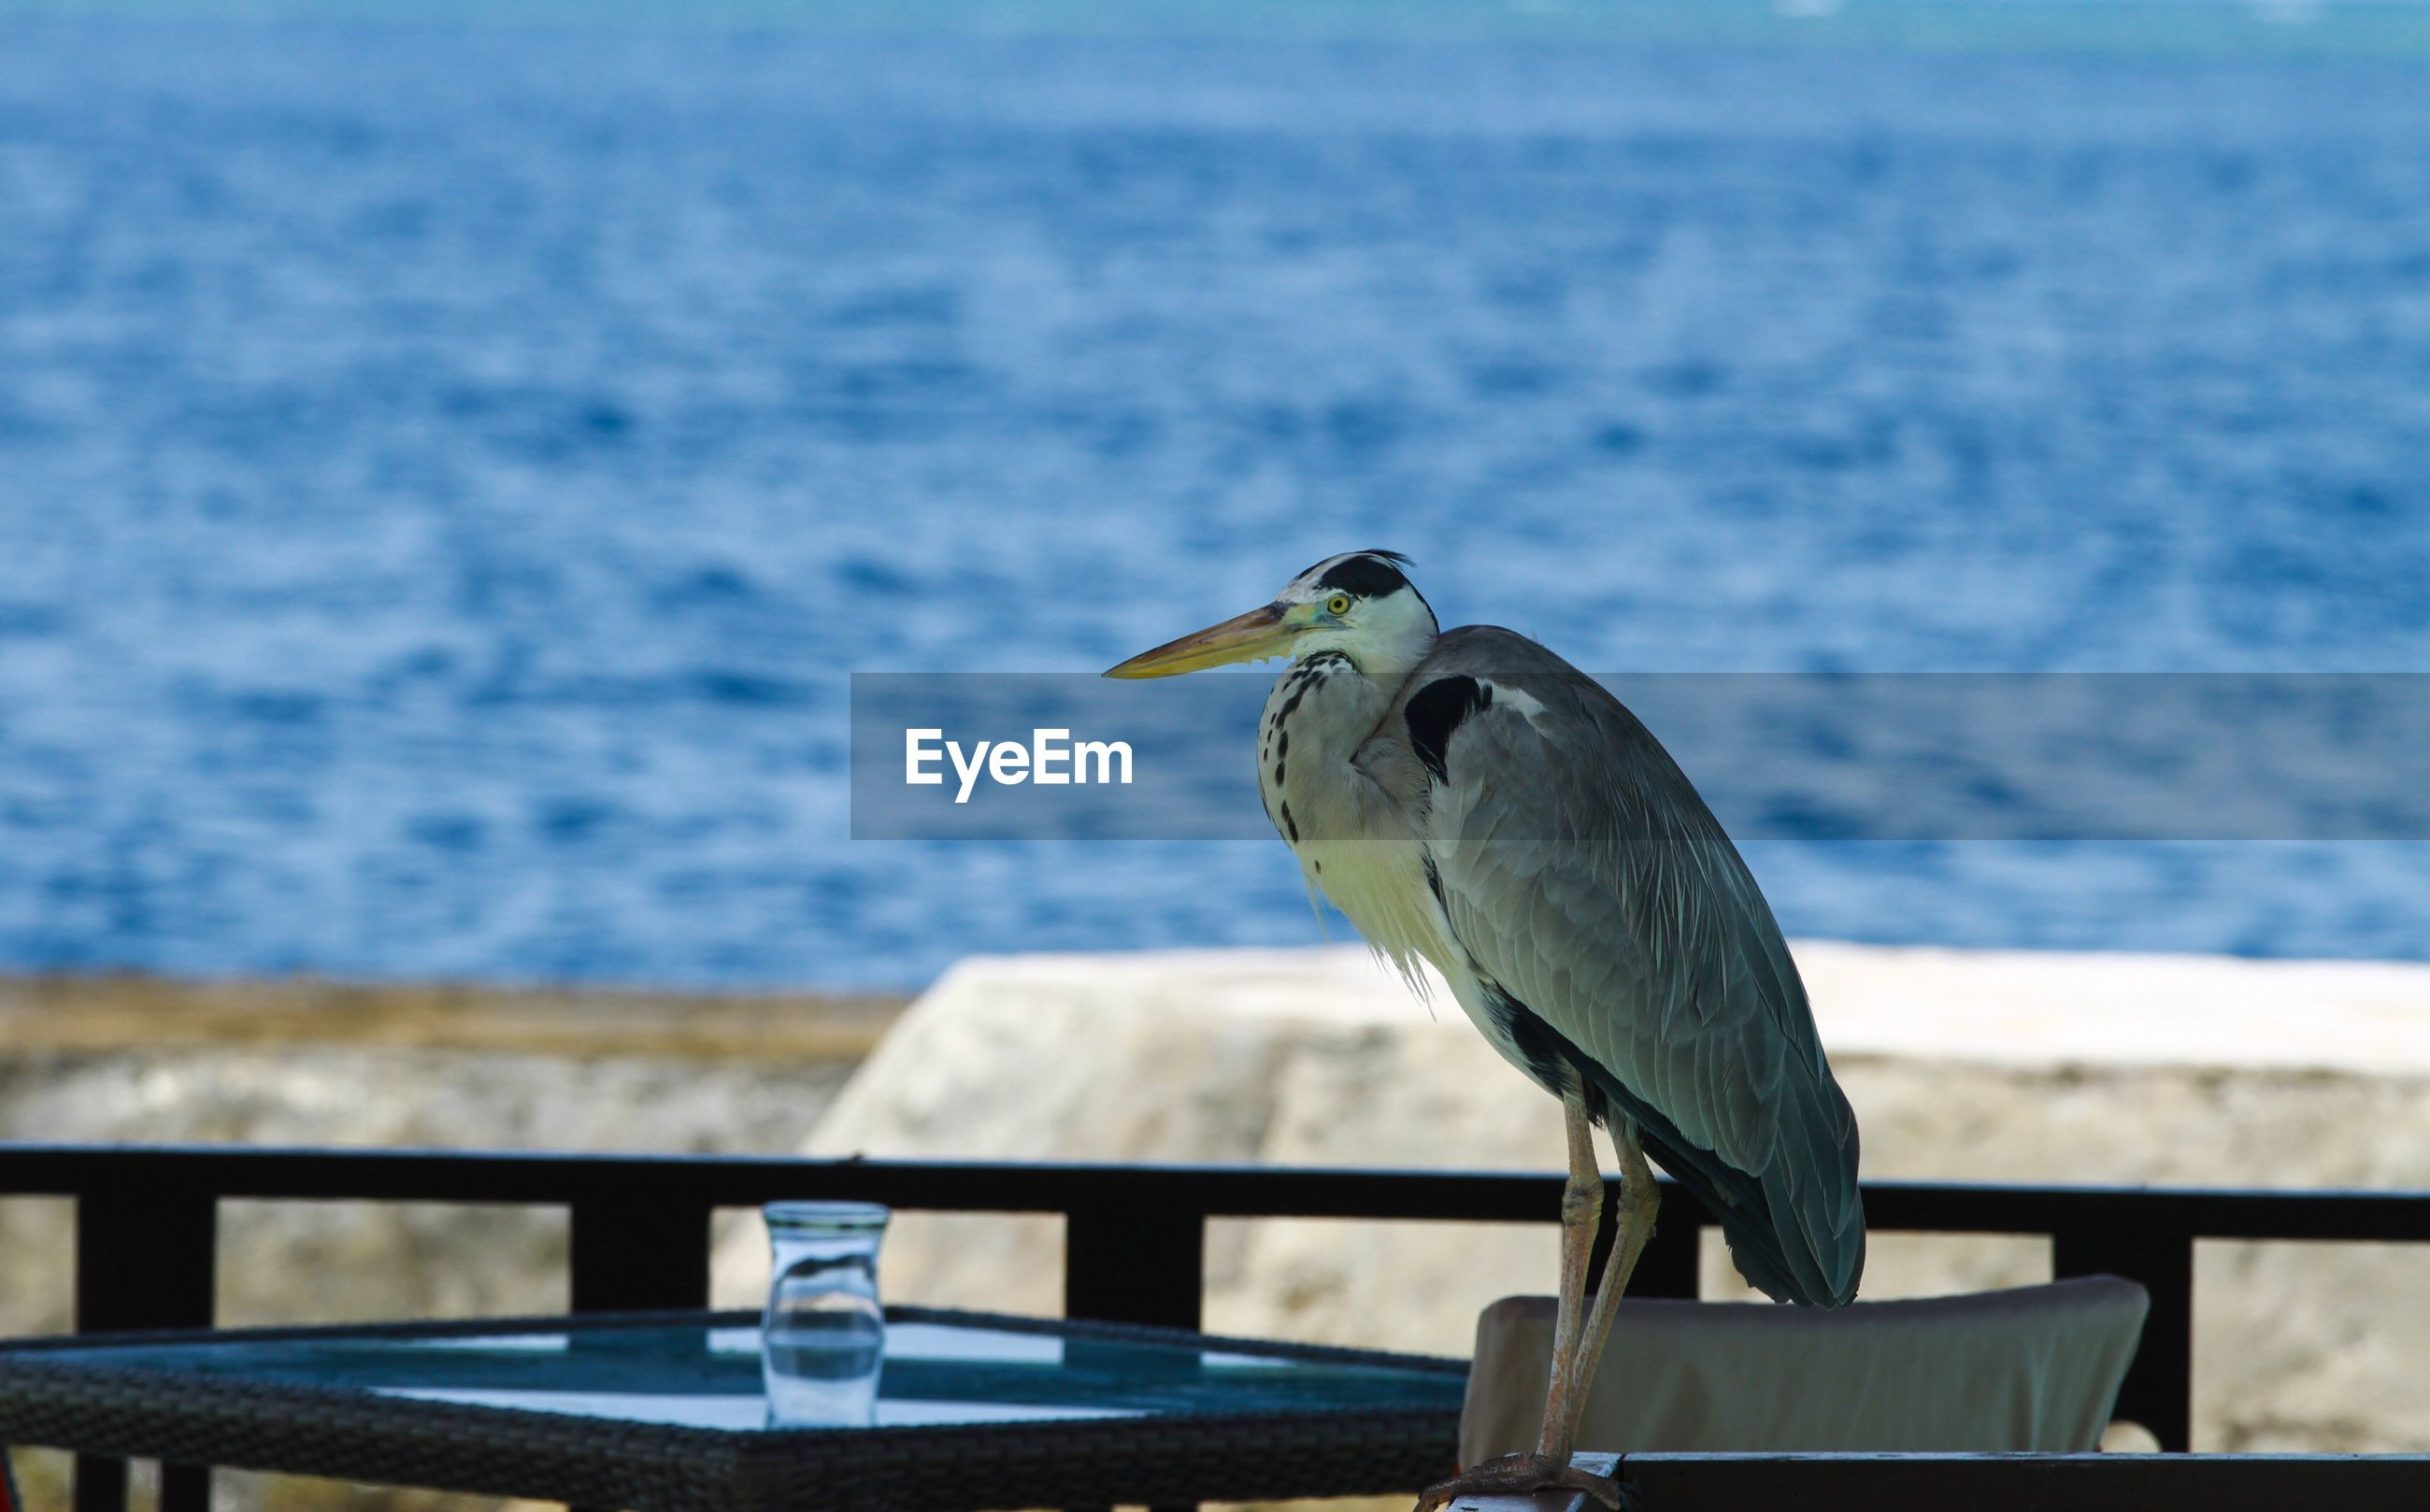 wildlife, animals in the wild, one animal, animal themes, bird, water, sea, focus on foreground, railing, perching, full length, rear view, vertebrate, zoology, selective focus, seagull, nature, tranquility, day, blue, beak, tourism